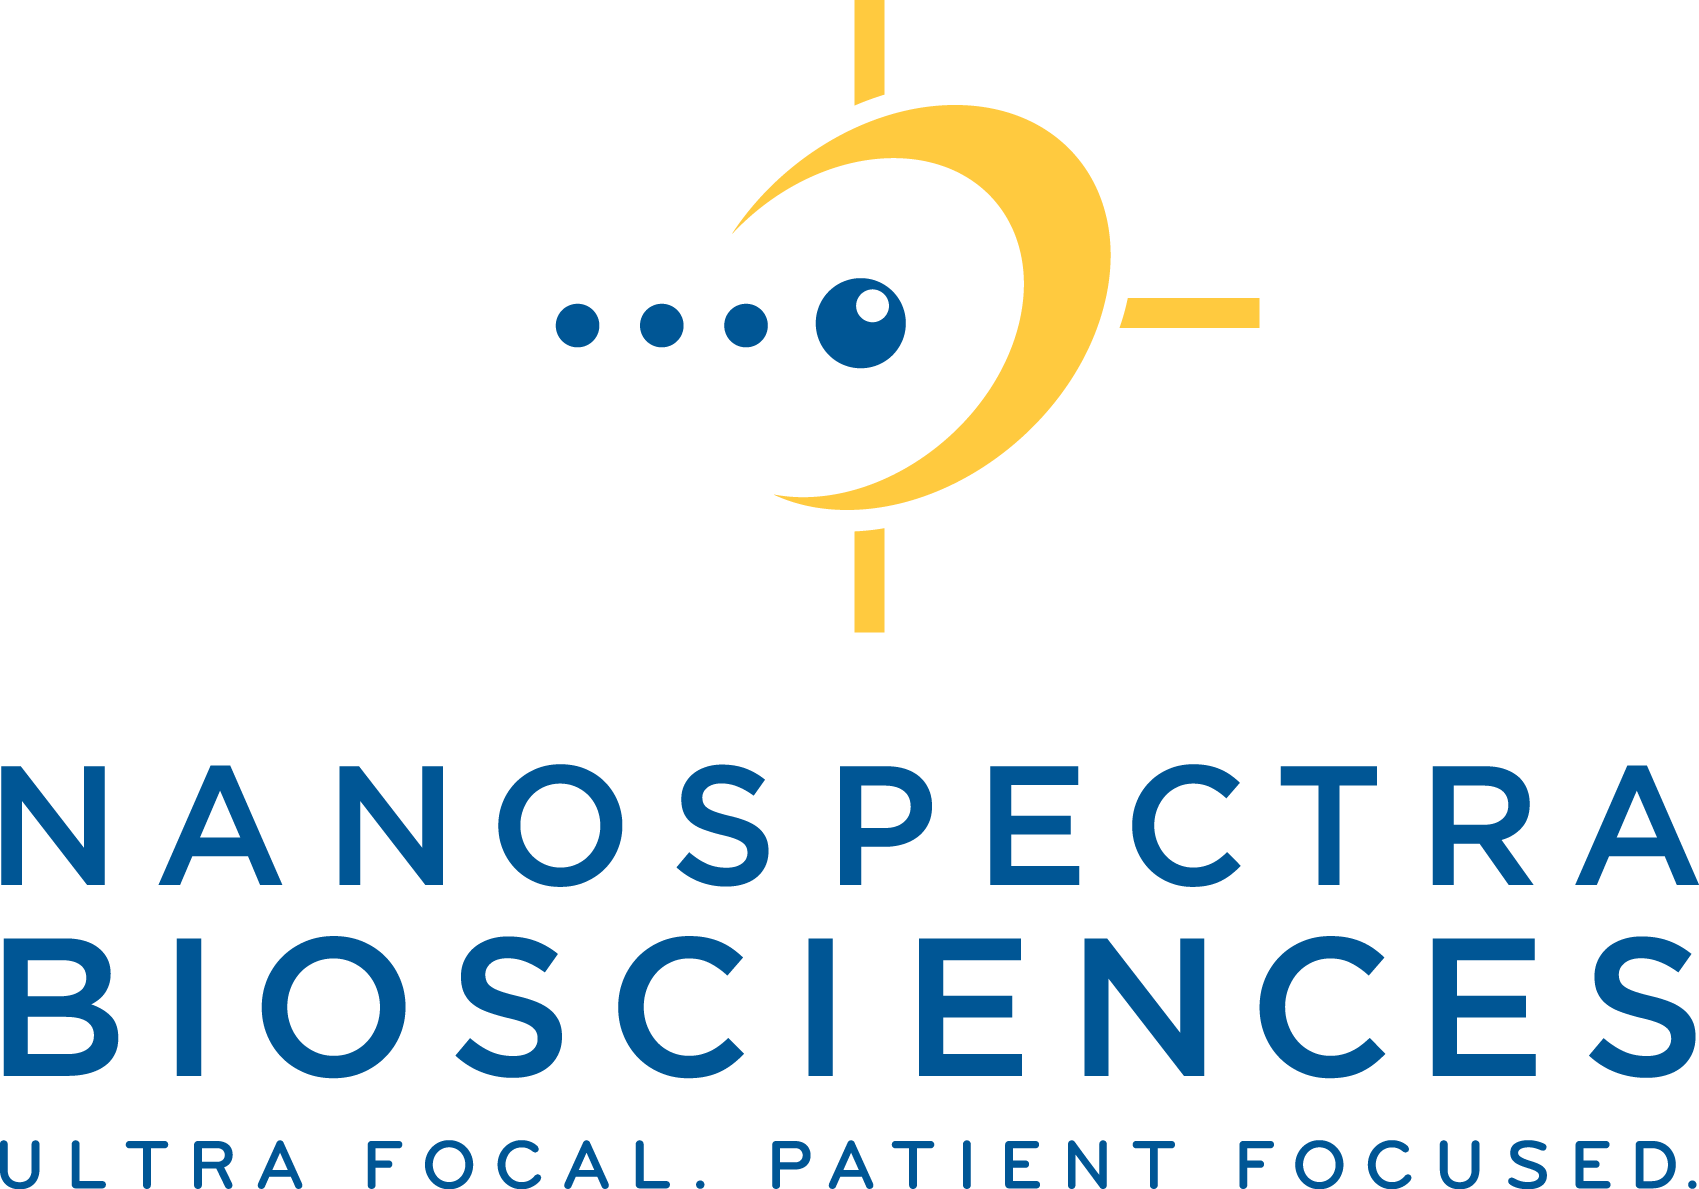 Nanospectra Biosciences